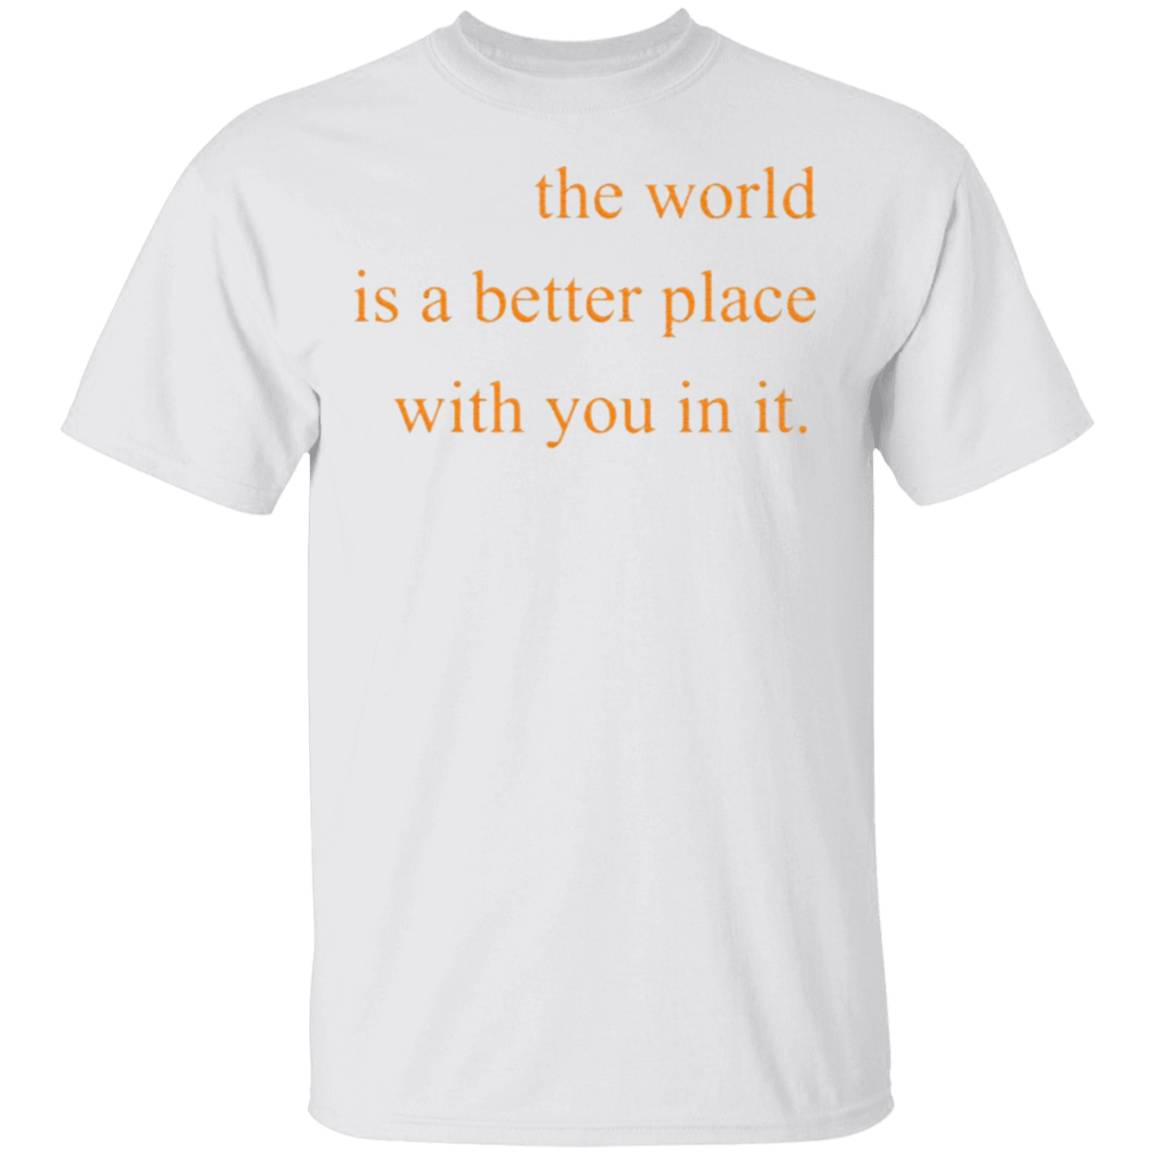 The World Is A Better Place With You In It T-Shirt